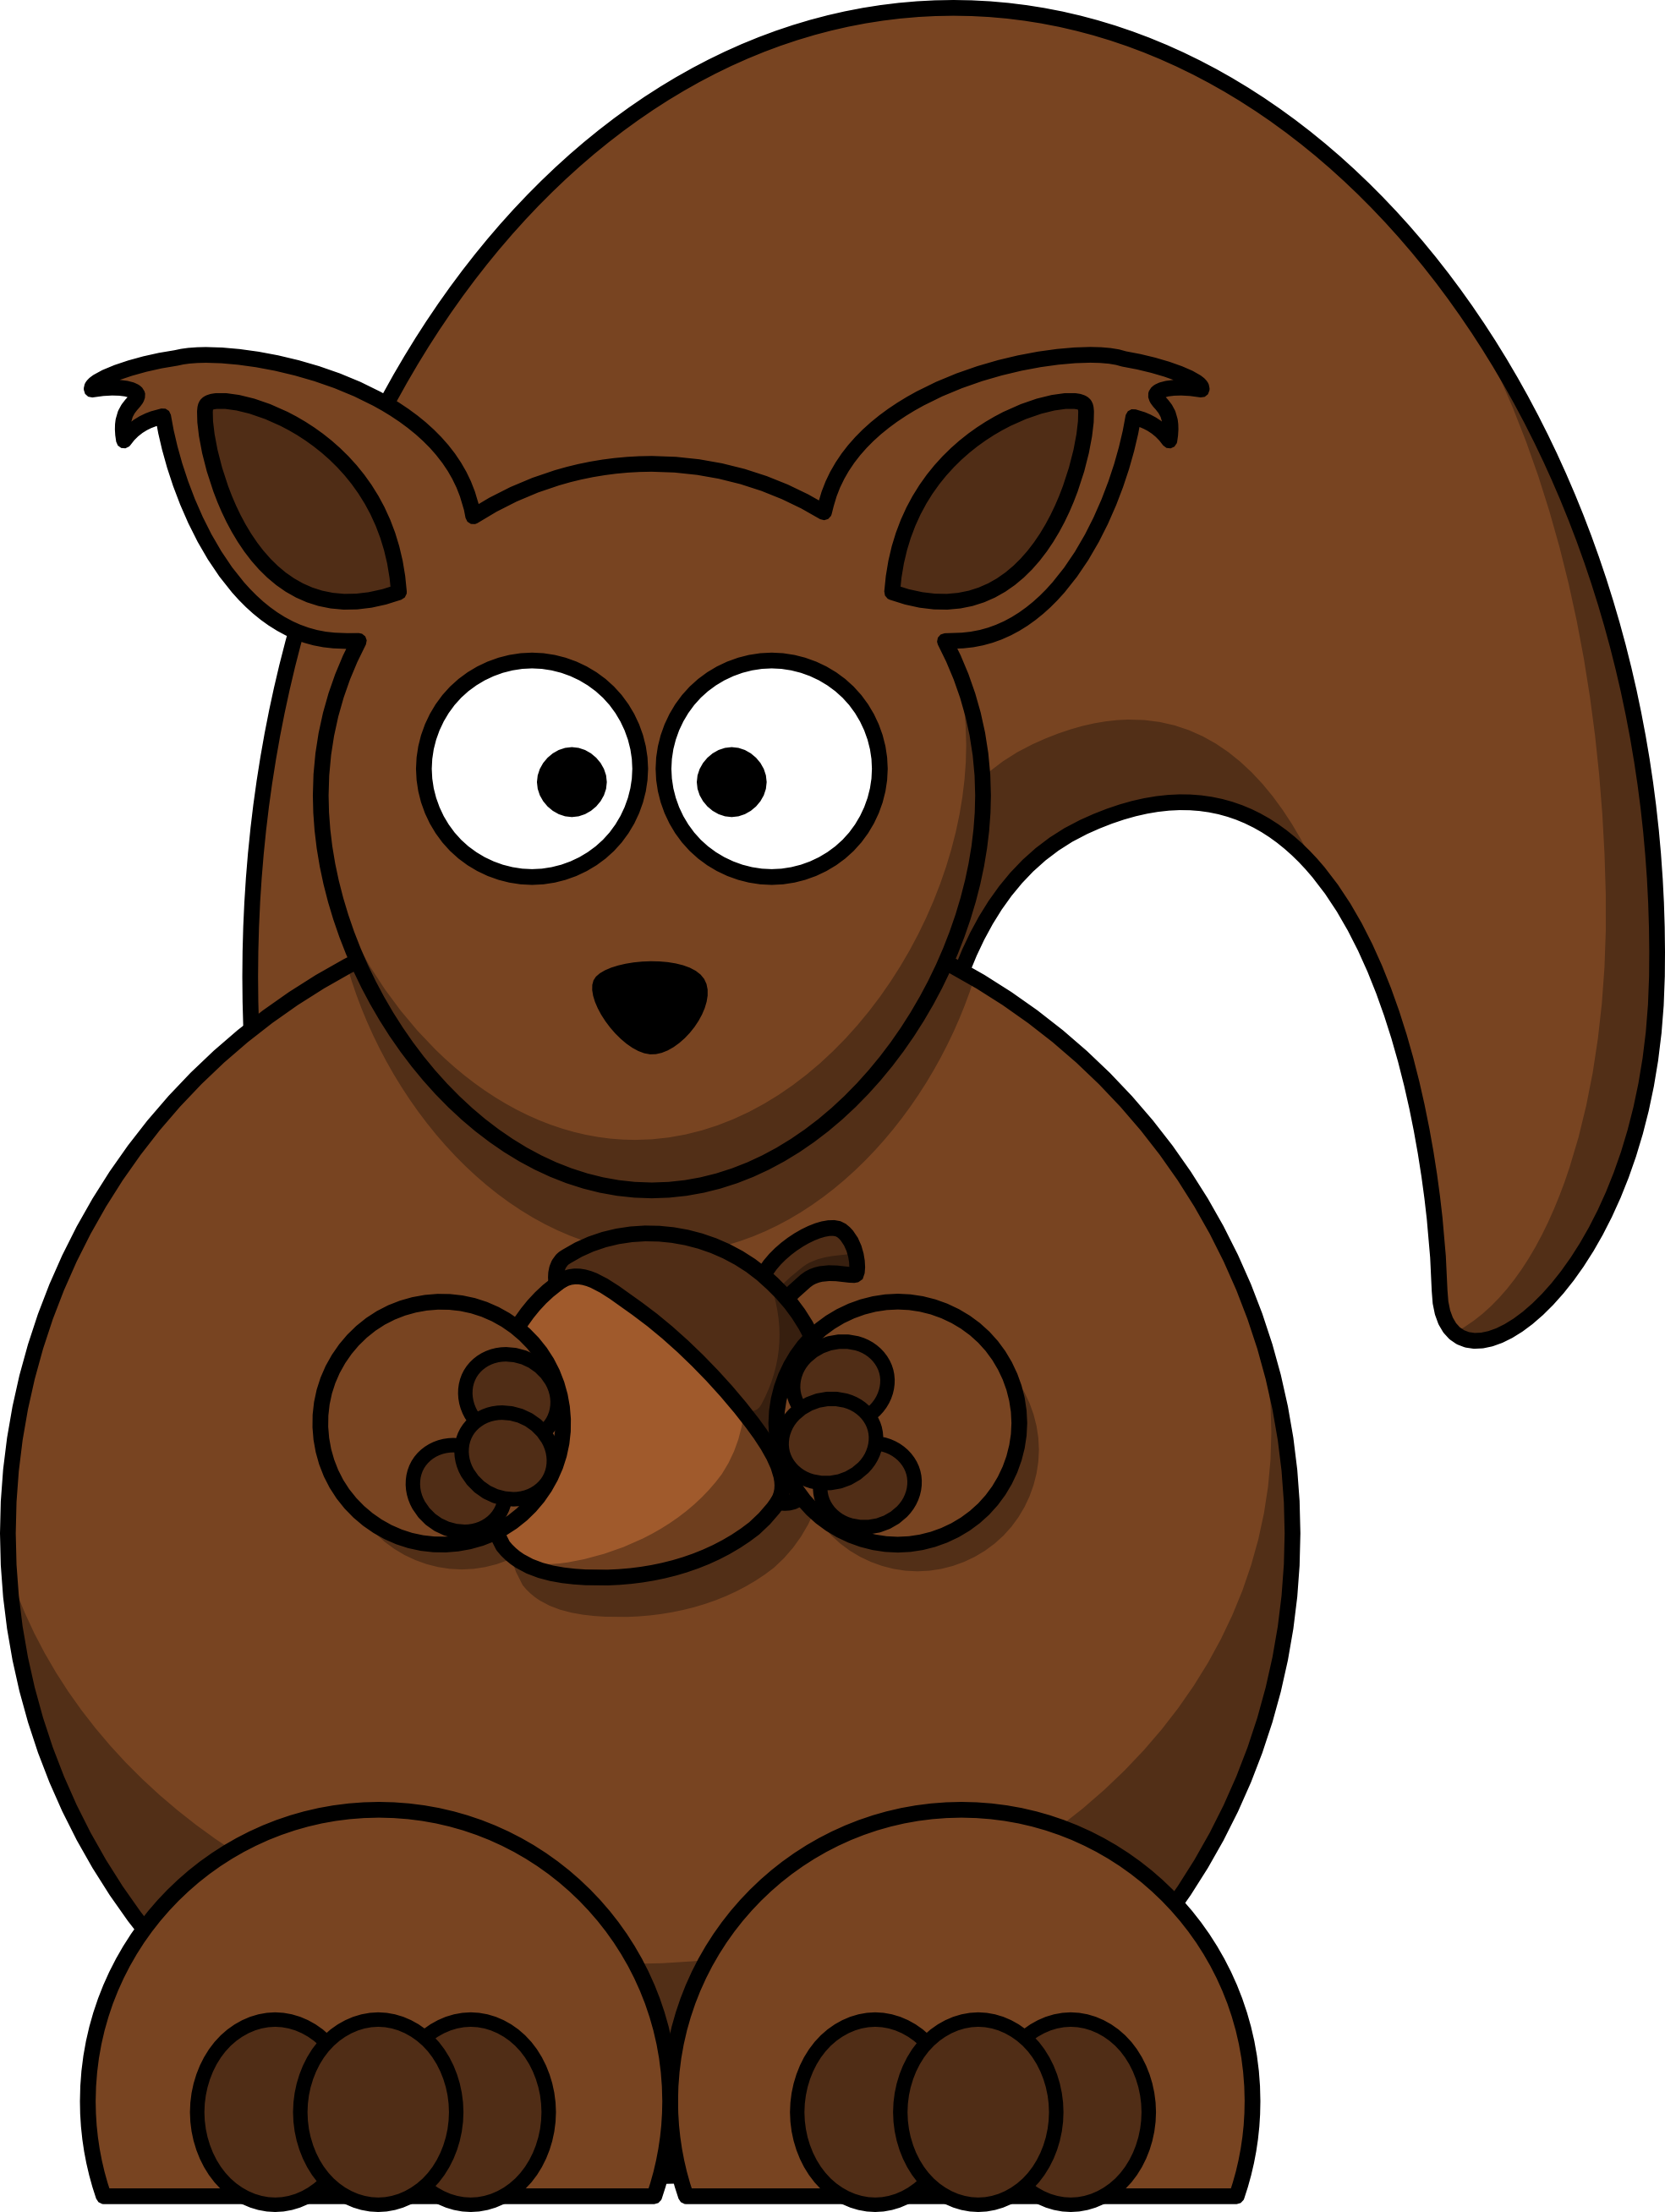 Squirrel Clip Art With Nuts | Clipart Panda - Free Clipart Images graphic free